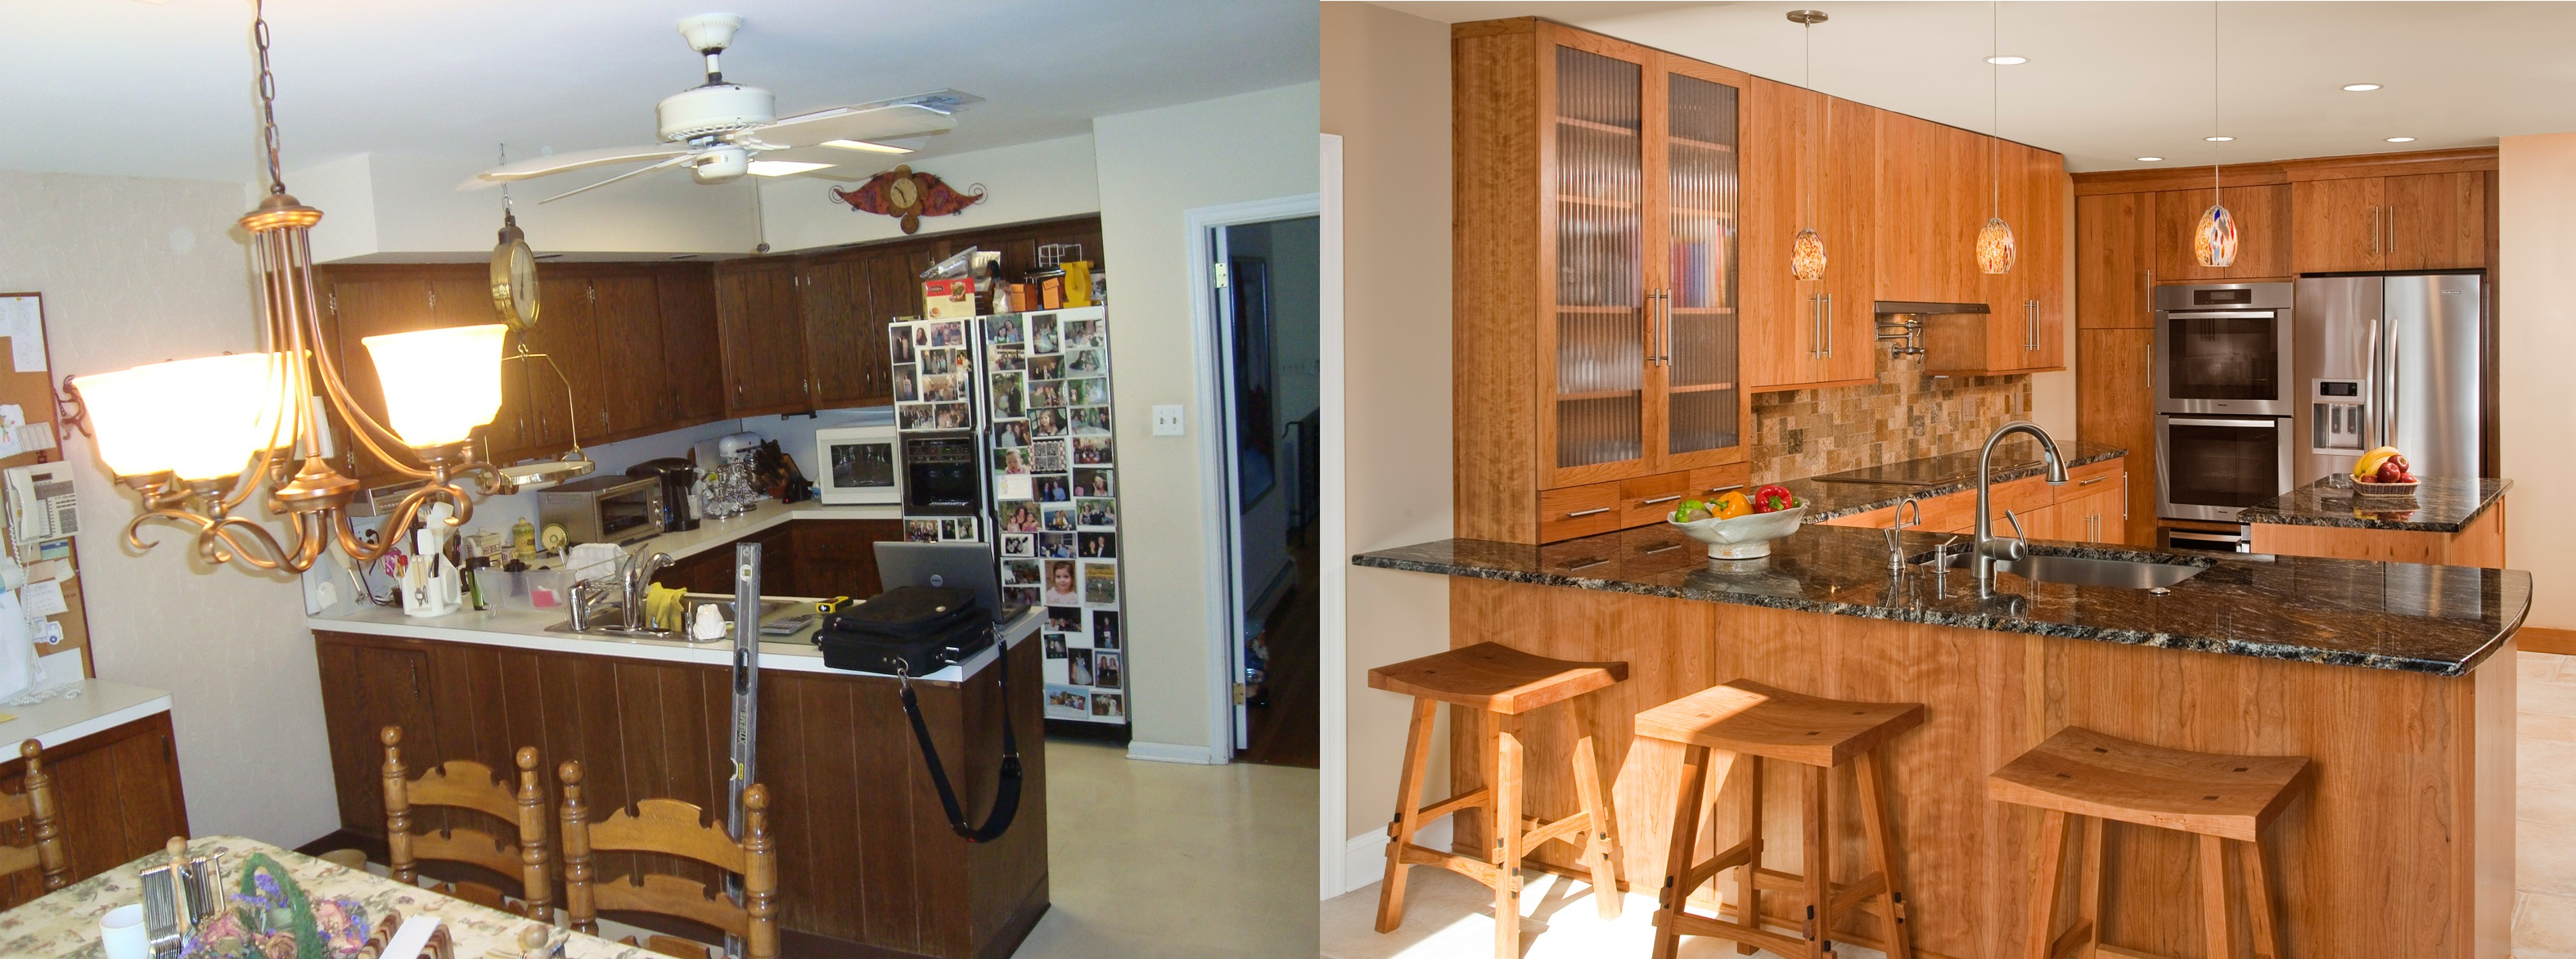 Renovating A Kitchen Whats The Difference Between Remodeling Renovating And